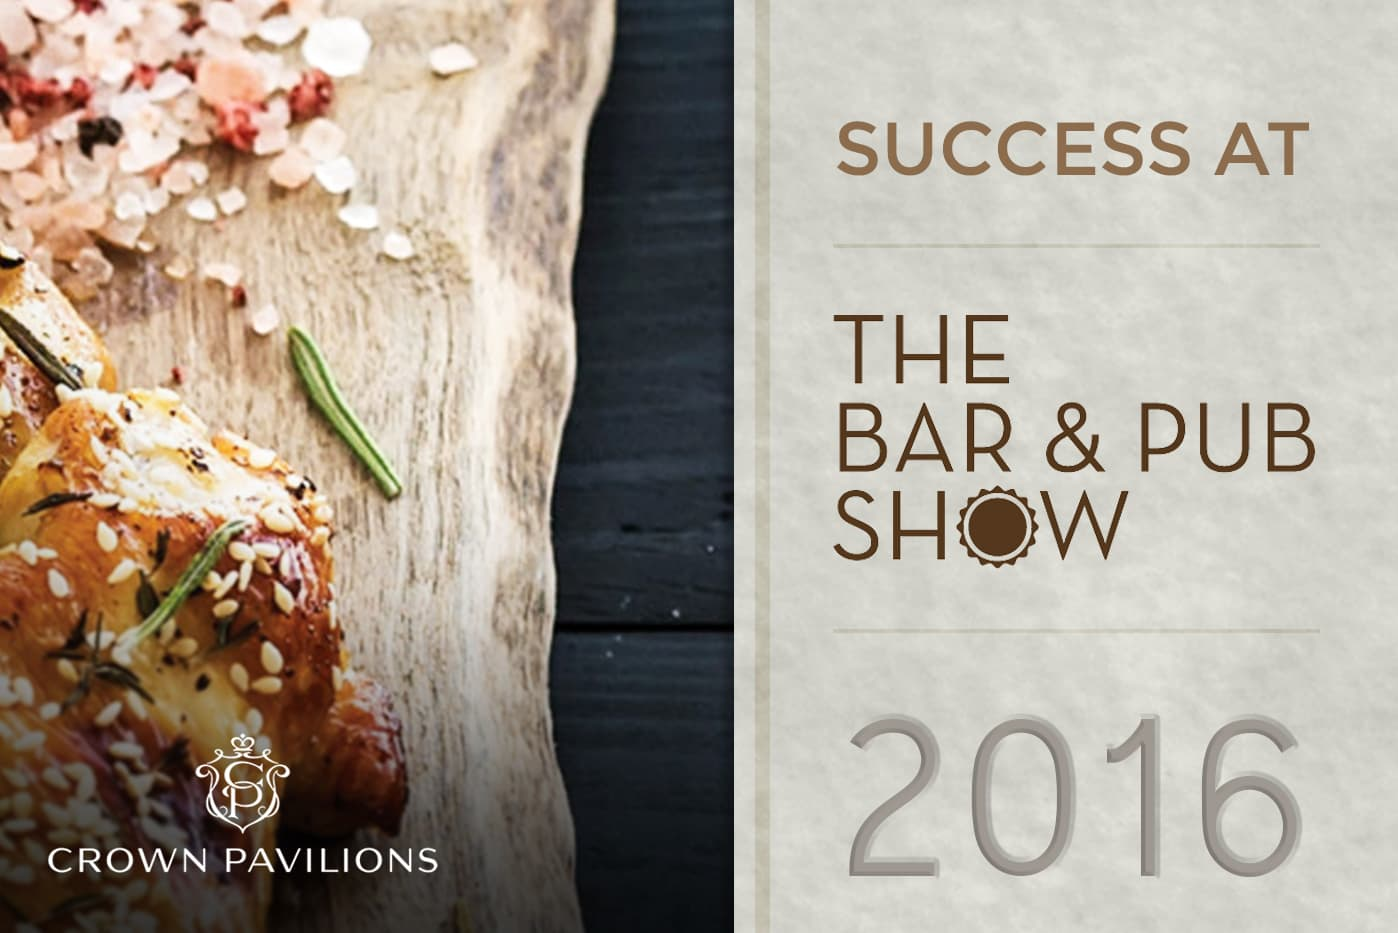 Crown Pavilions Success at The Bar and Pub Show 2016